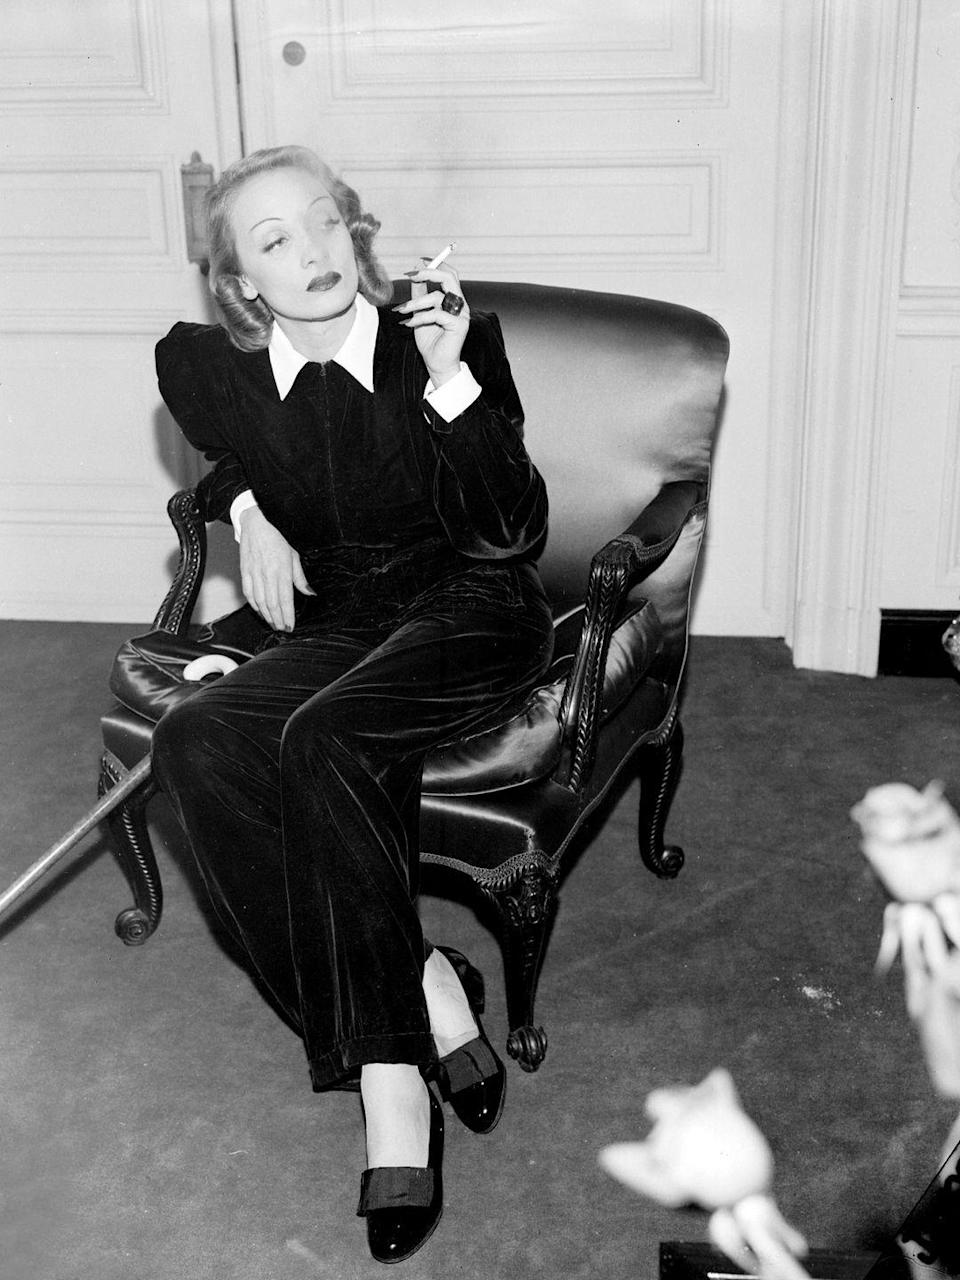 <p>Dietrich is caught lounging in a velvet pantsuit at the St. Regis Hotel in New York City. The actress and singer was very outspoken against her home country during World War II and performed over 500 times, sometimes near the front lines, for the Allied troops between 1943 and 1946. <br></p>